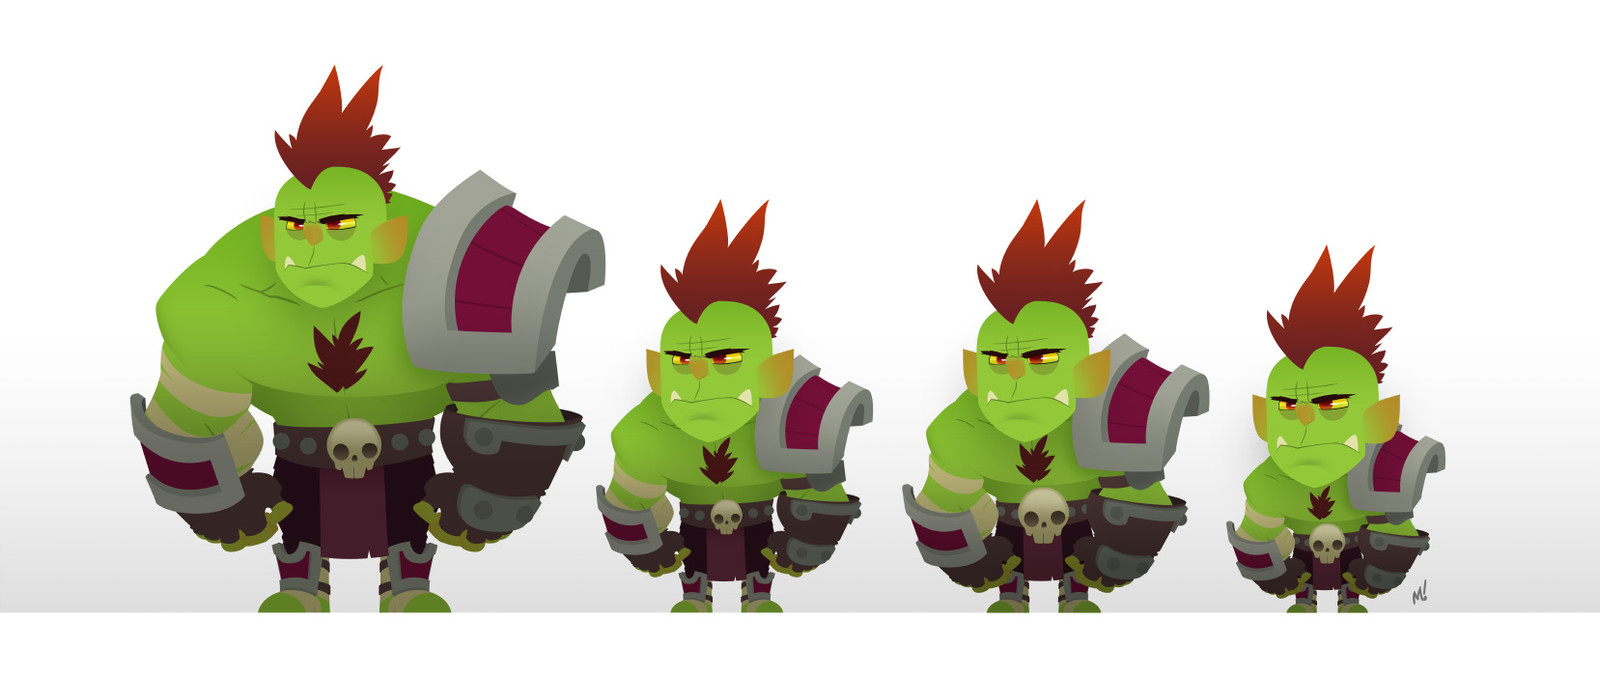 Simple colors applied to orc to quickly test head sizes.